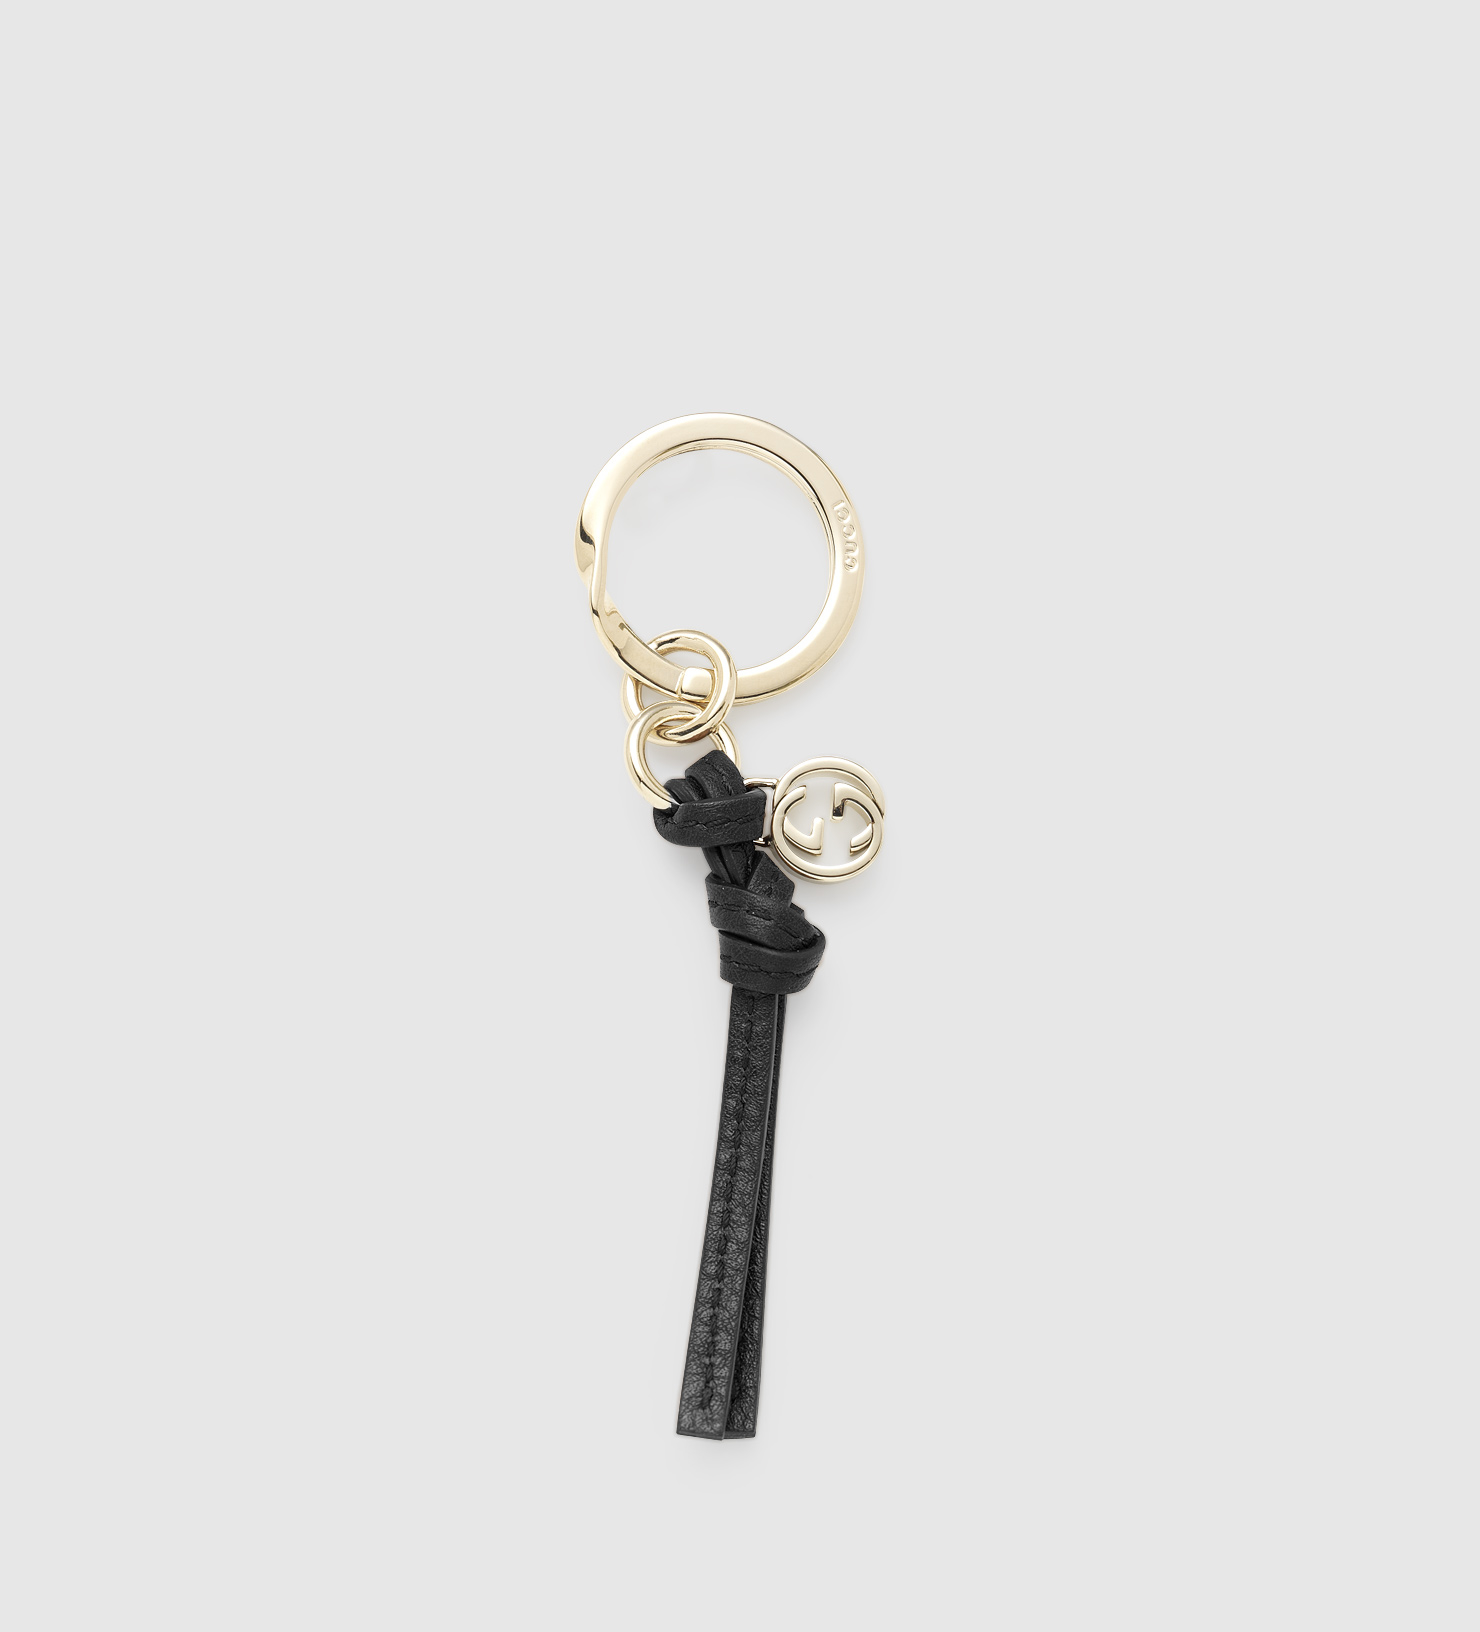 fa870e8432a Lyst - Gucci Black Leather Key Ring in Black